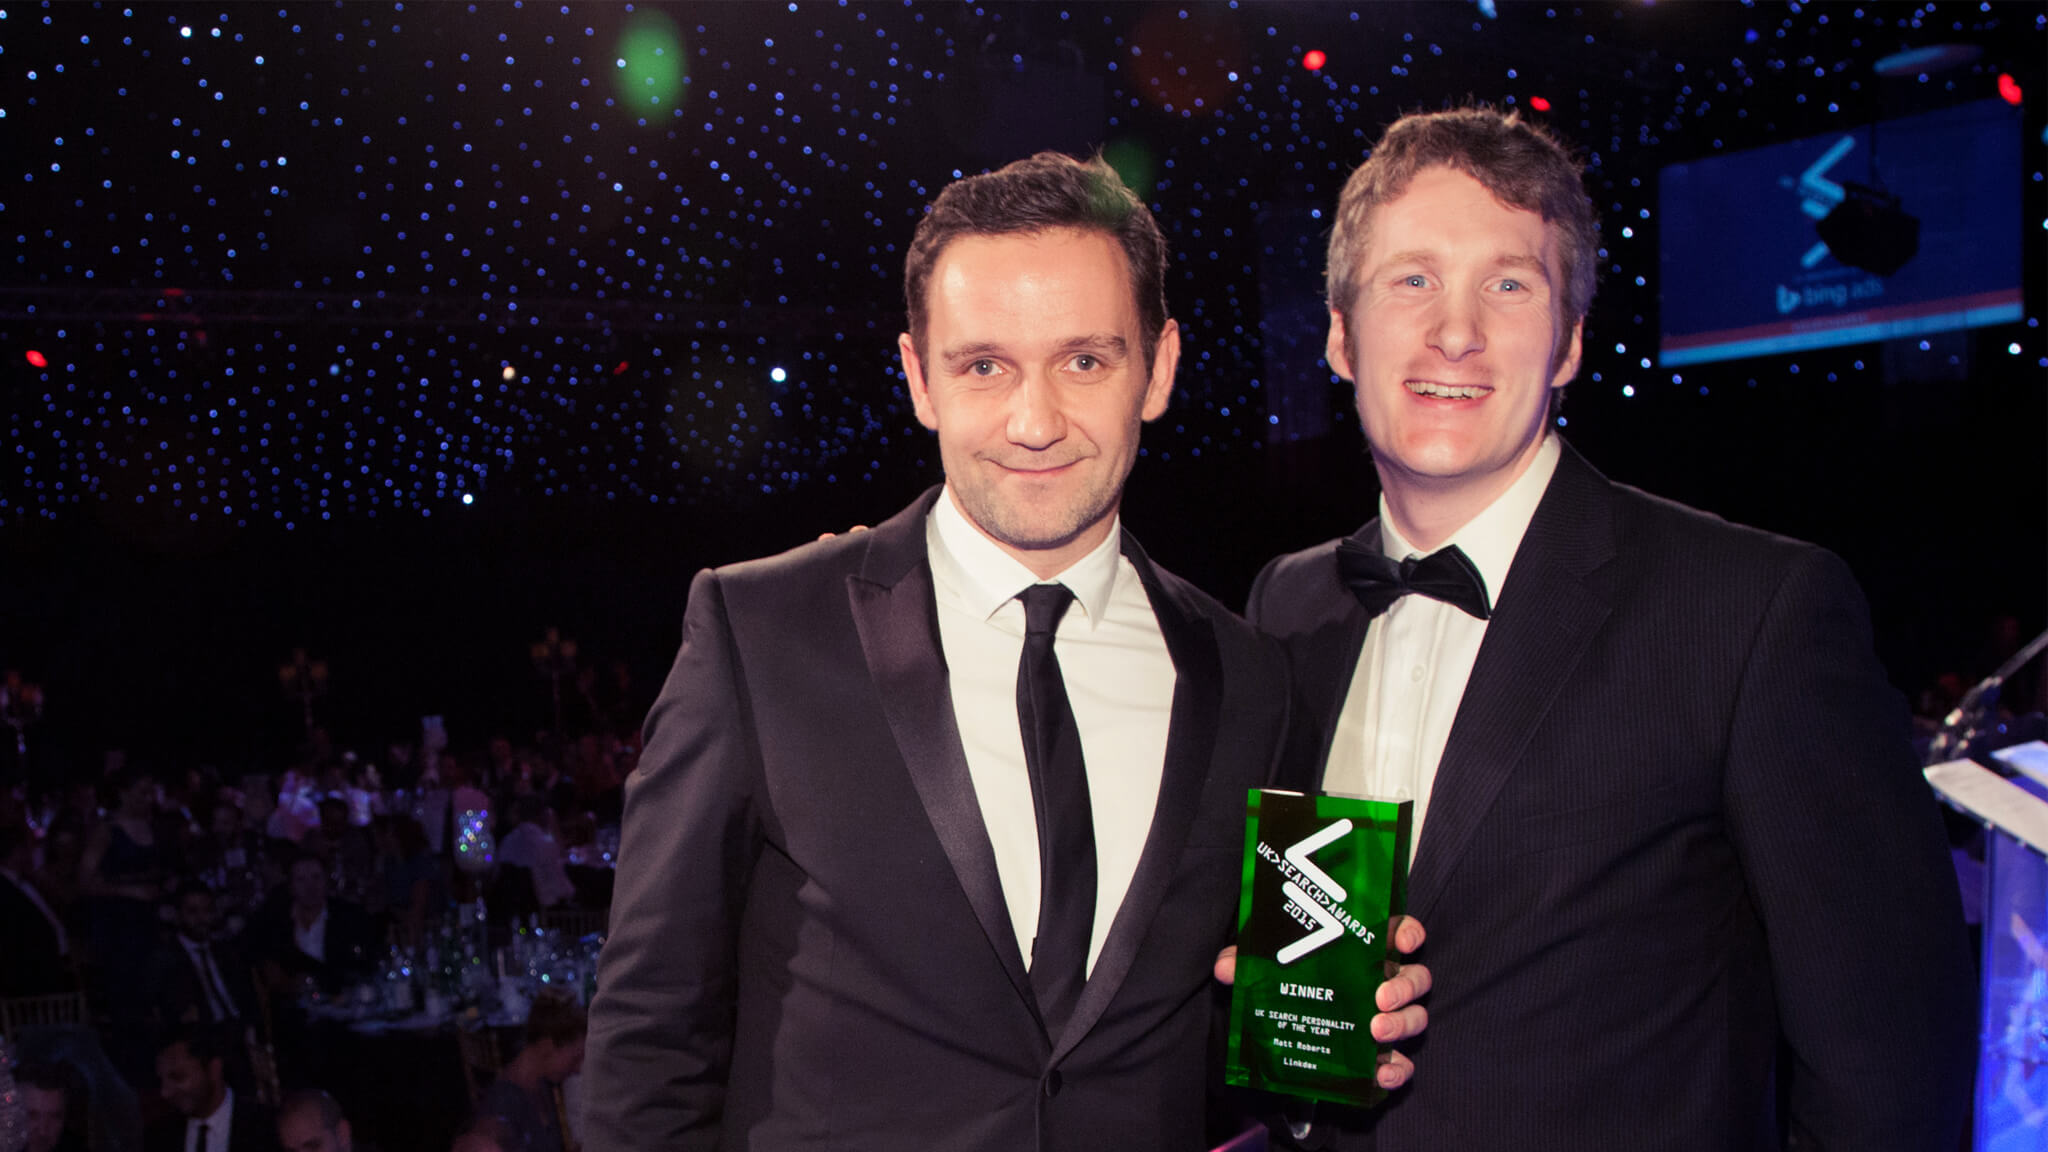 Matt Roberts Wins Search Personality of the Year At UK #SearchAwards